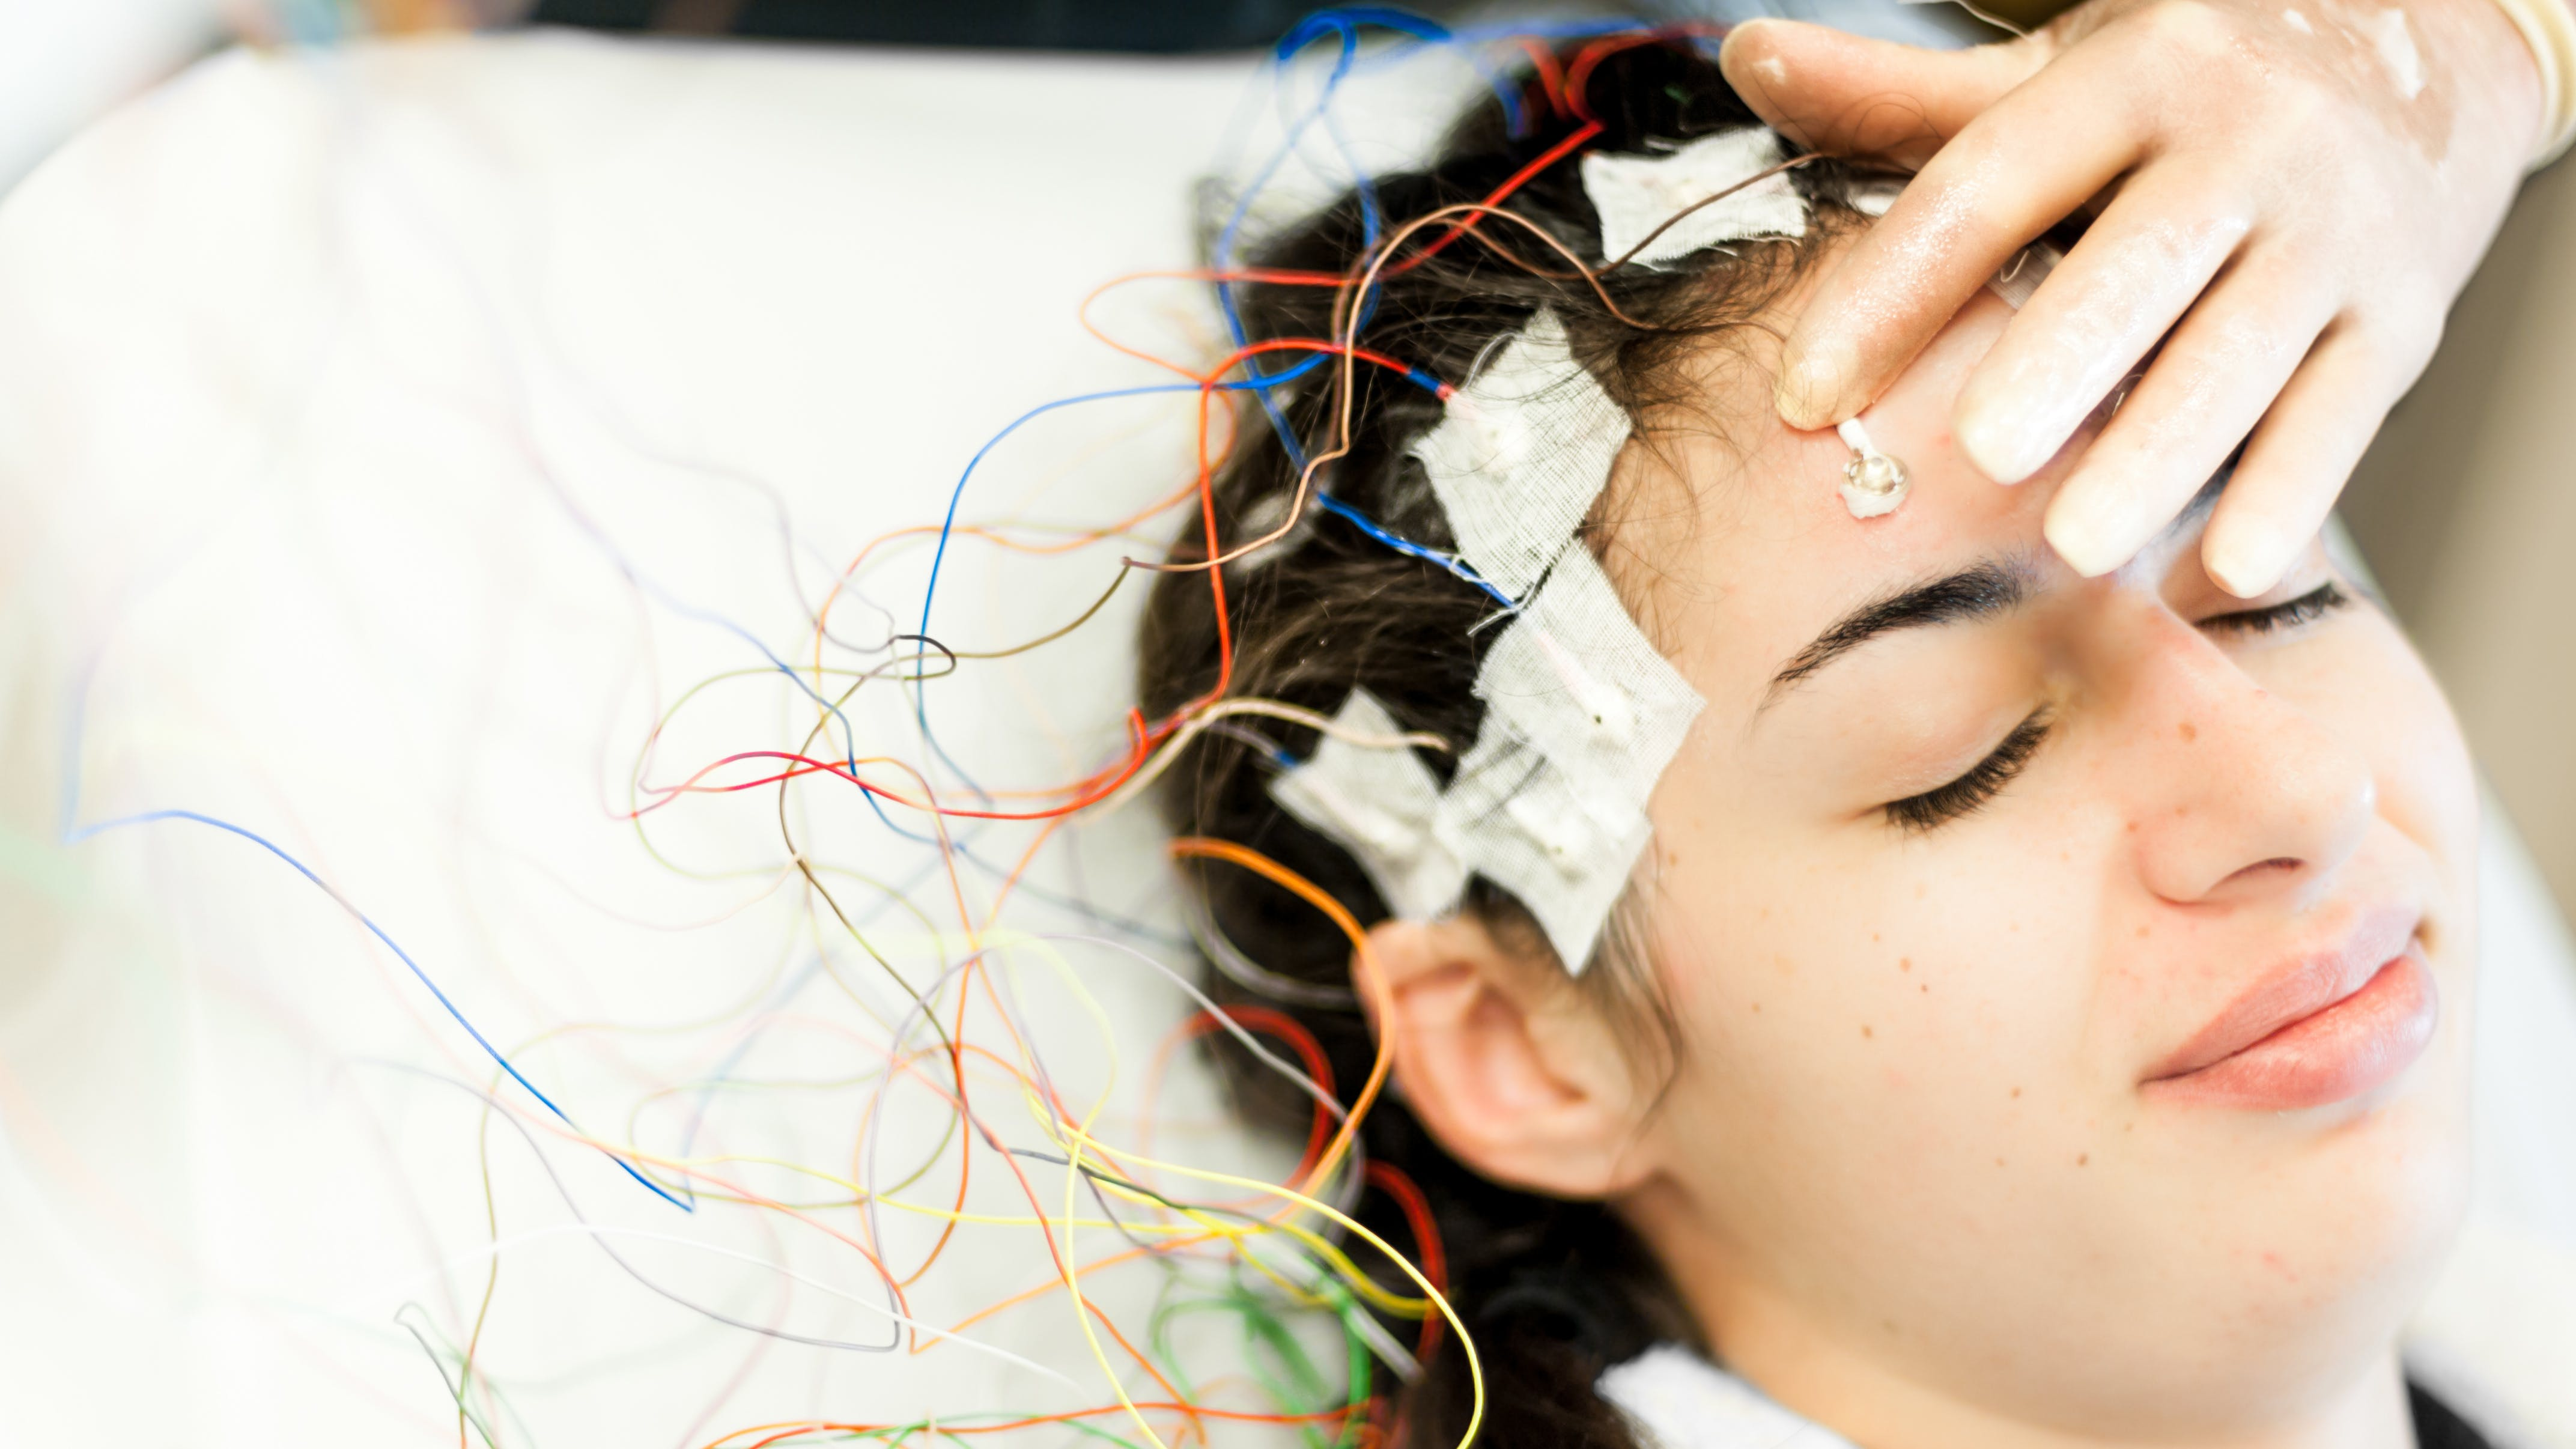 Young woman having an eeg test